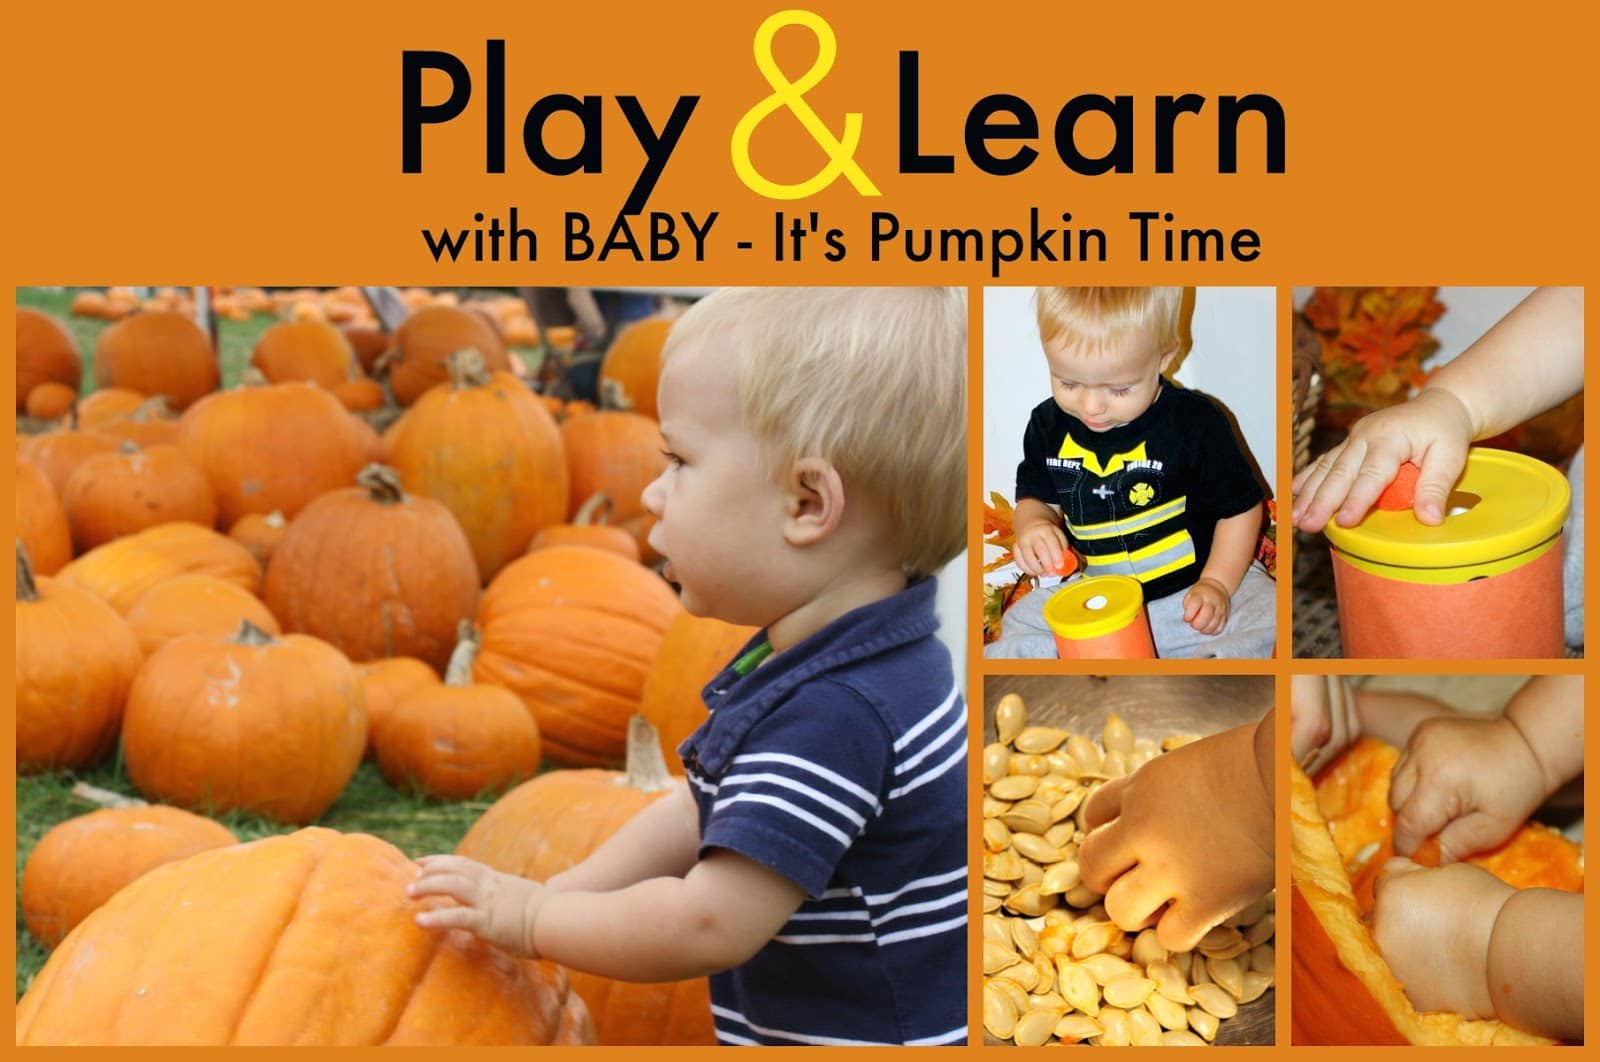 Play and Learn with Baby - It's Pumpkin Time